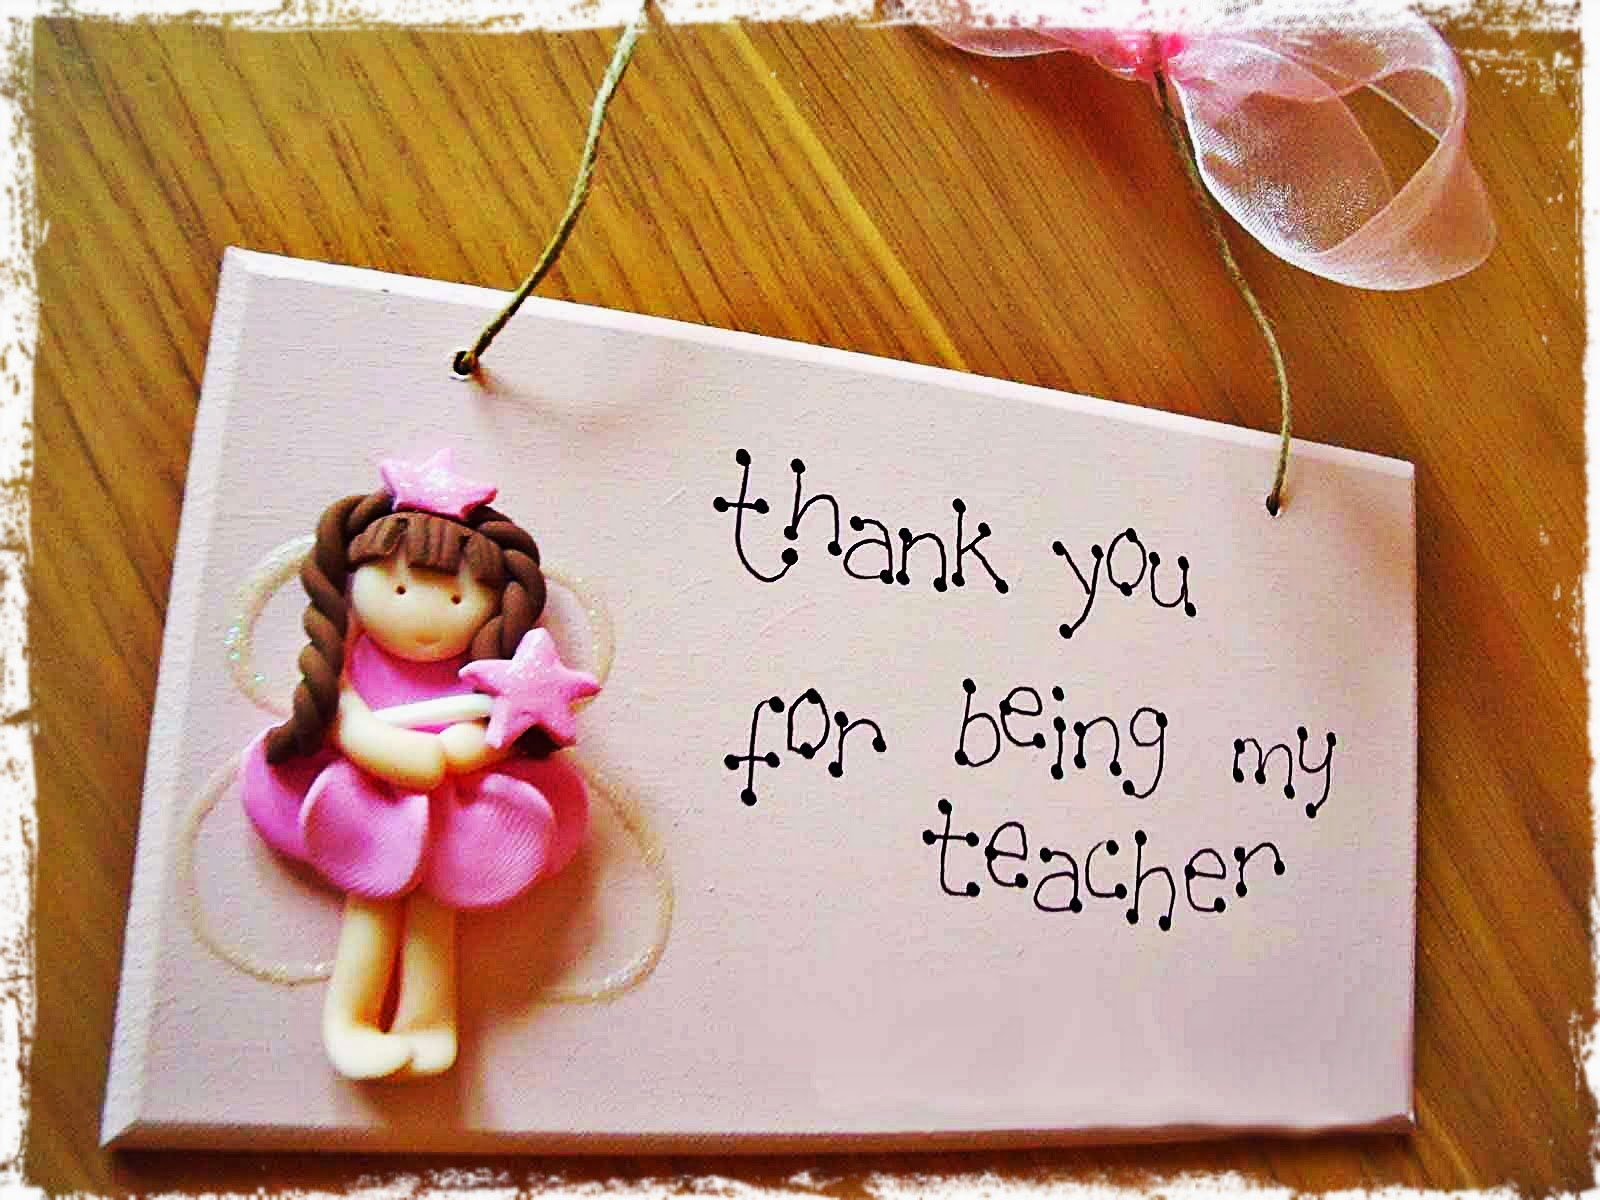 Best Teacher Day Greeting Card, Photos, Pics, HD Images, Facebook (FB) Cover, Wallpaper